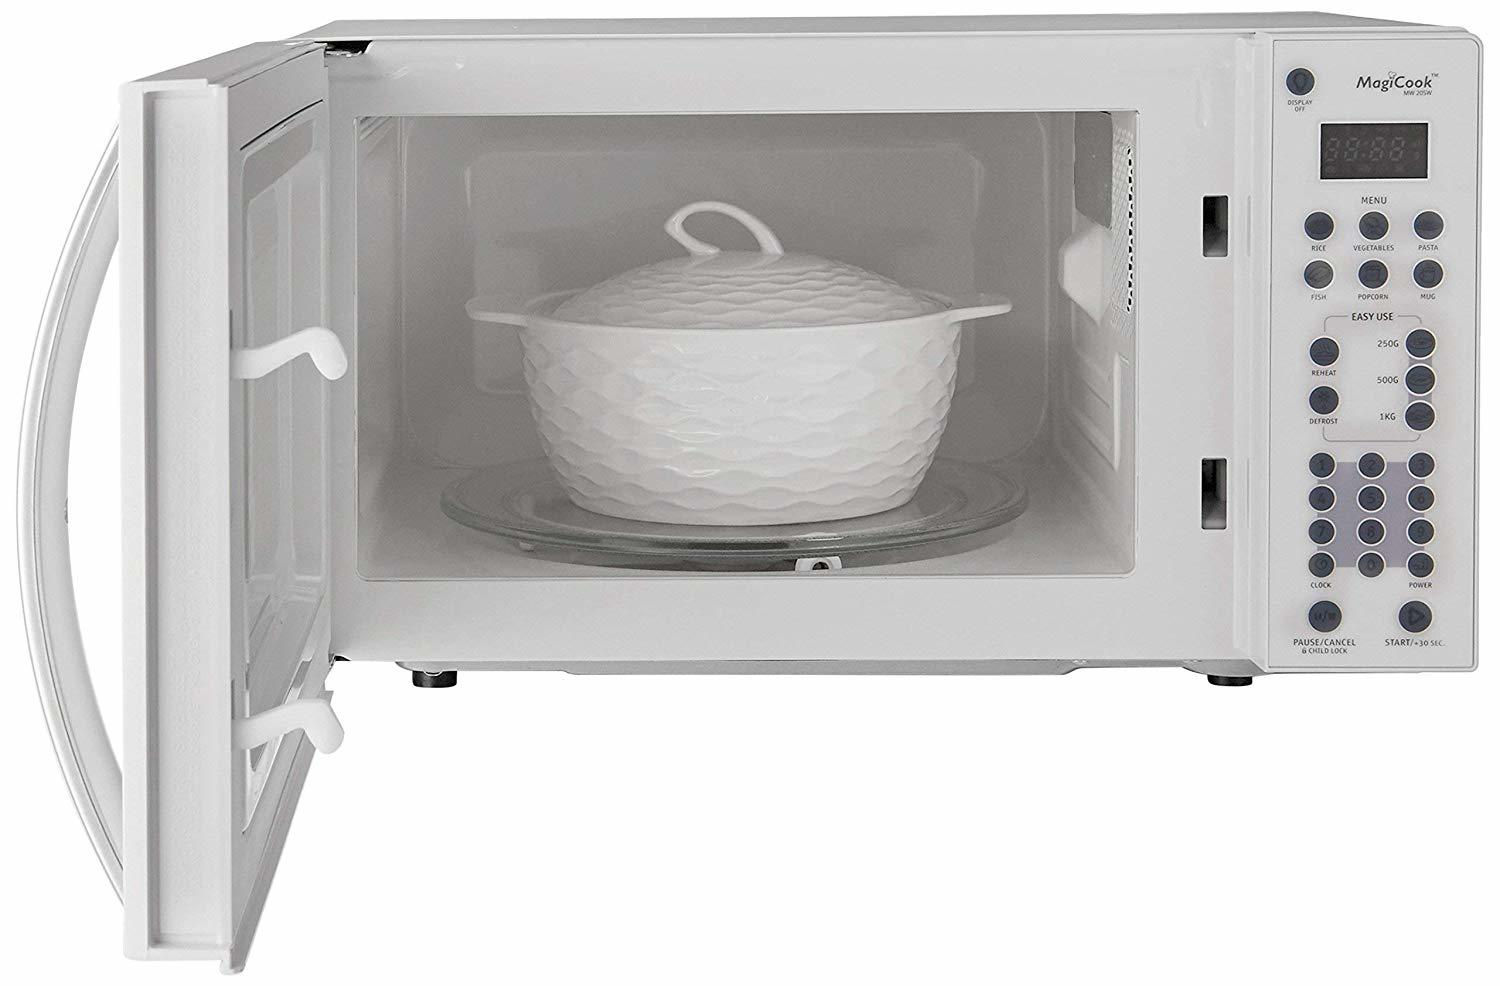 Whirlpool 20 L Solo Microwave Oven (Magicook 20SW, White)